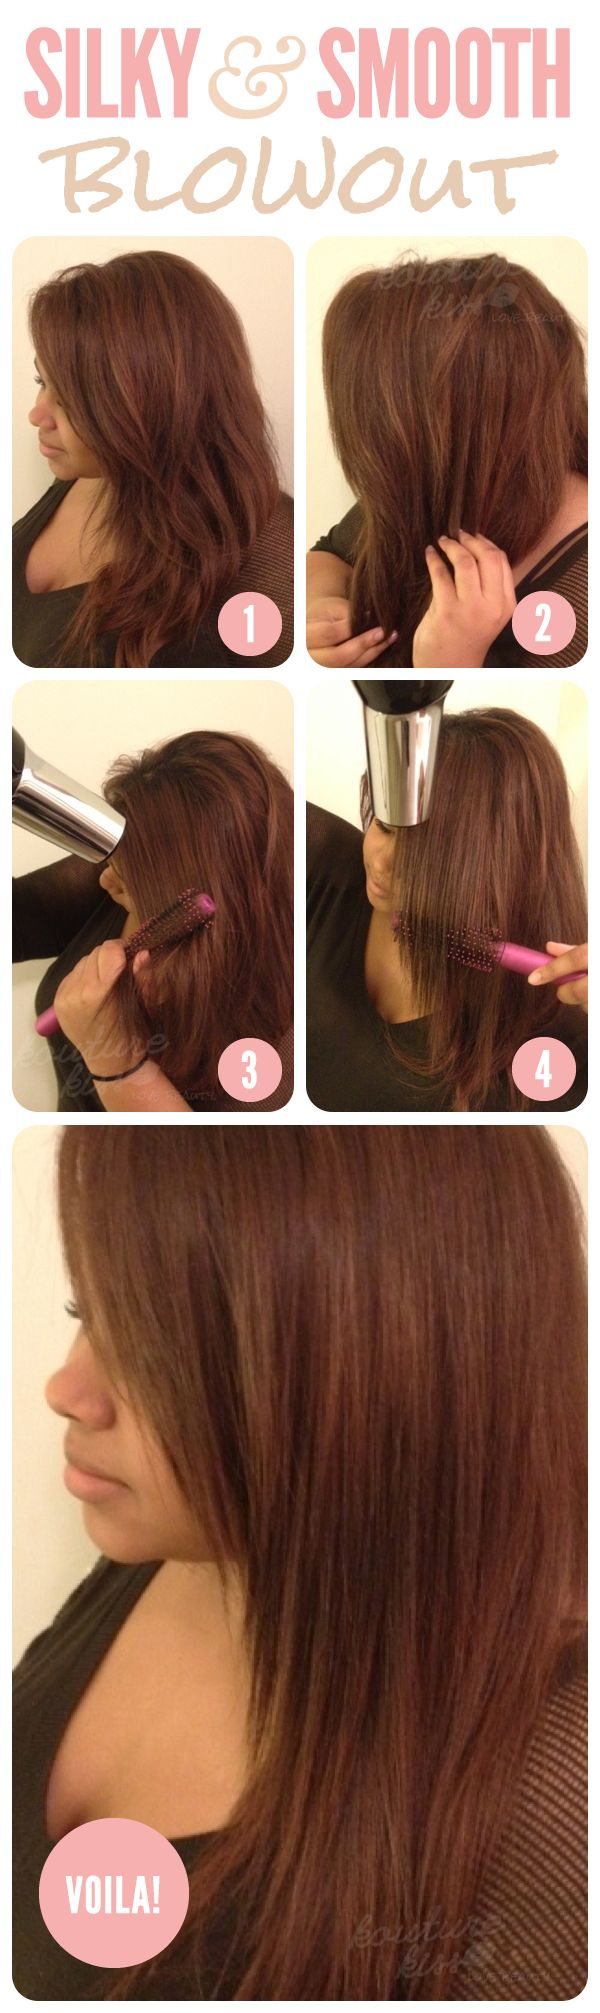 how to get less frizzy hair